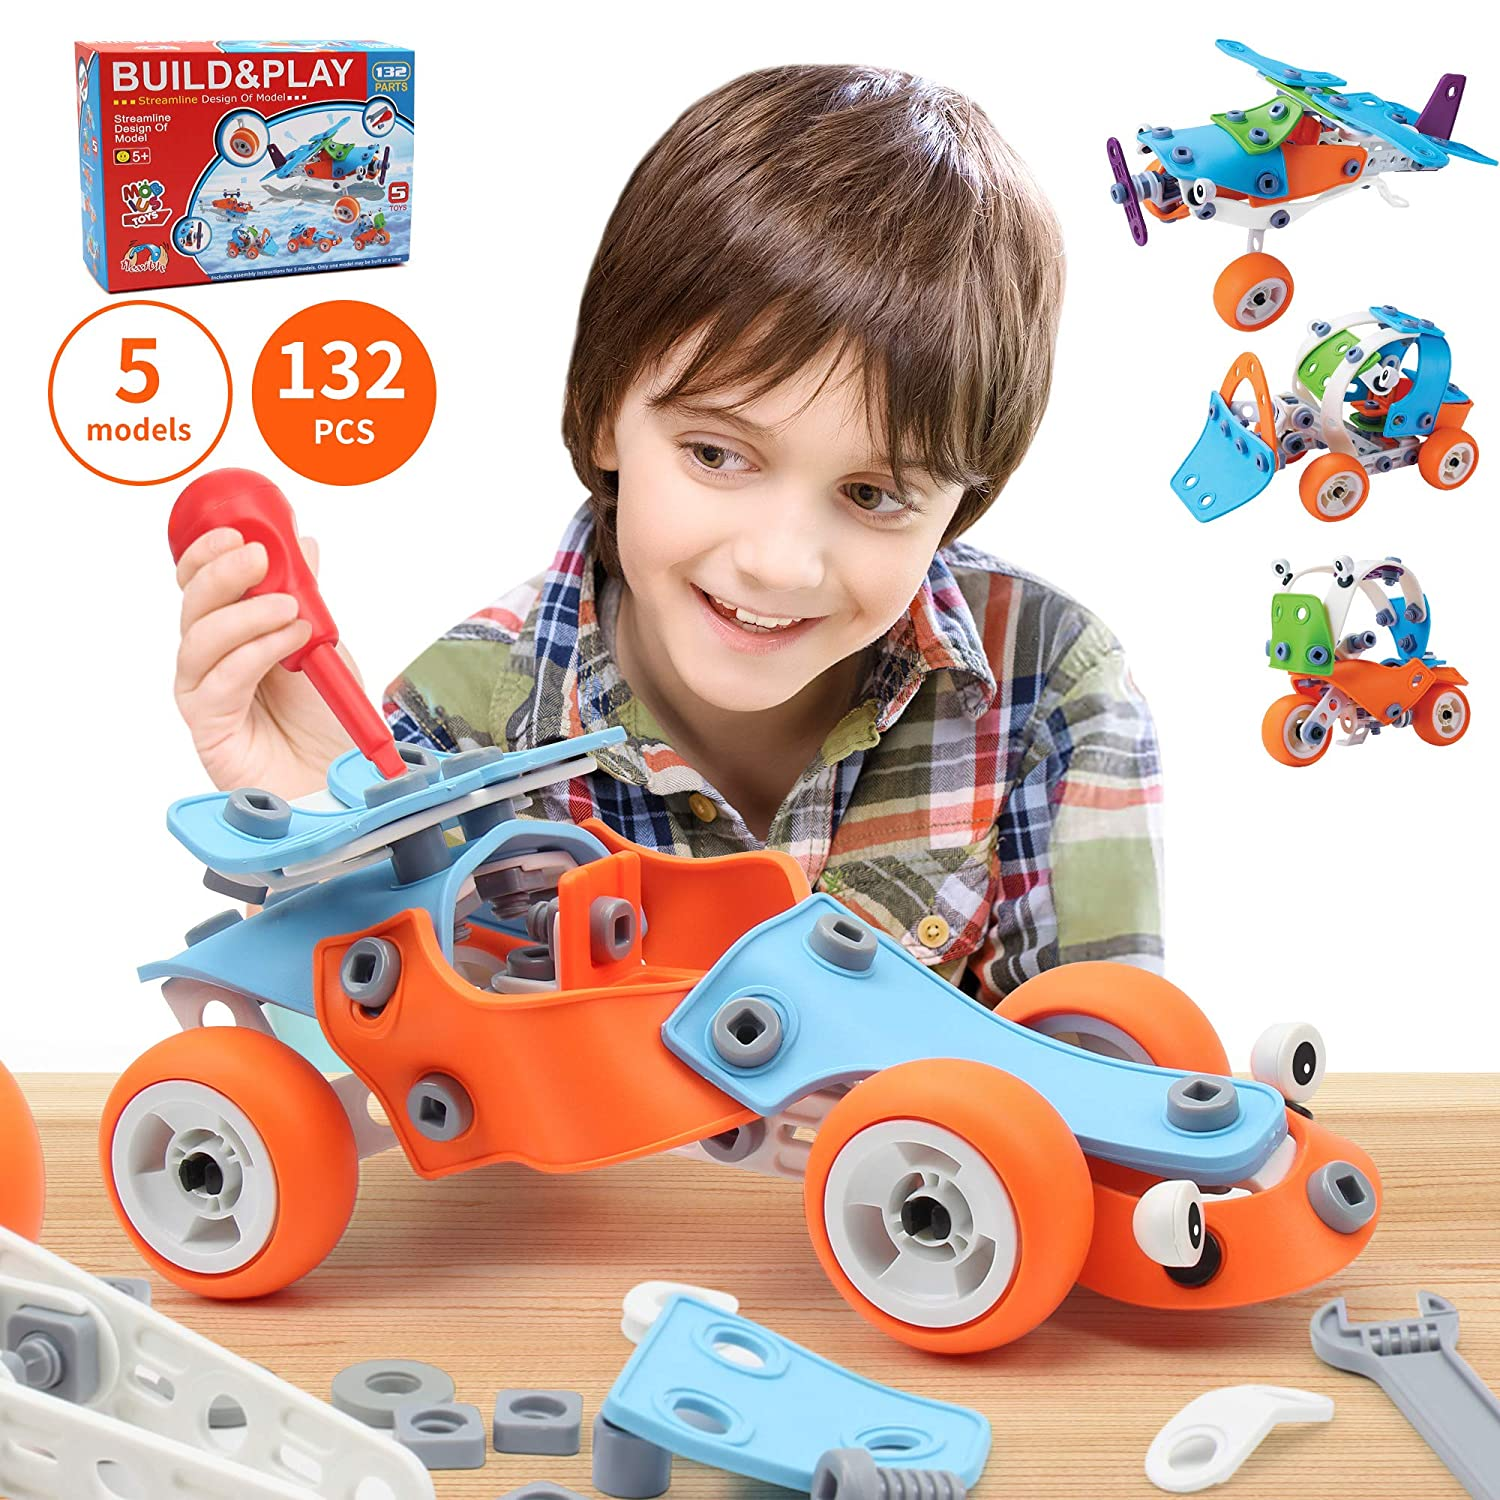 132 PCS STEM Learning Toys - Educational Engineering and DIY STEM Construction Kit - Best Building Set for 6 7 8 9 10+ Year Olds Boys & Girls That Love to Build - Creative Stem Gift Play Set for Kids